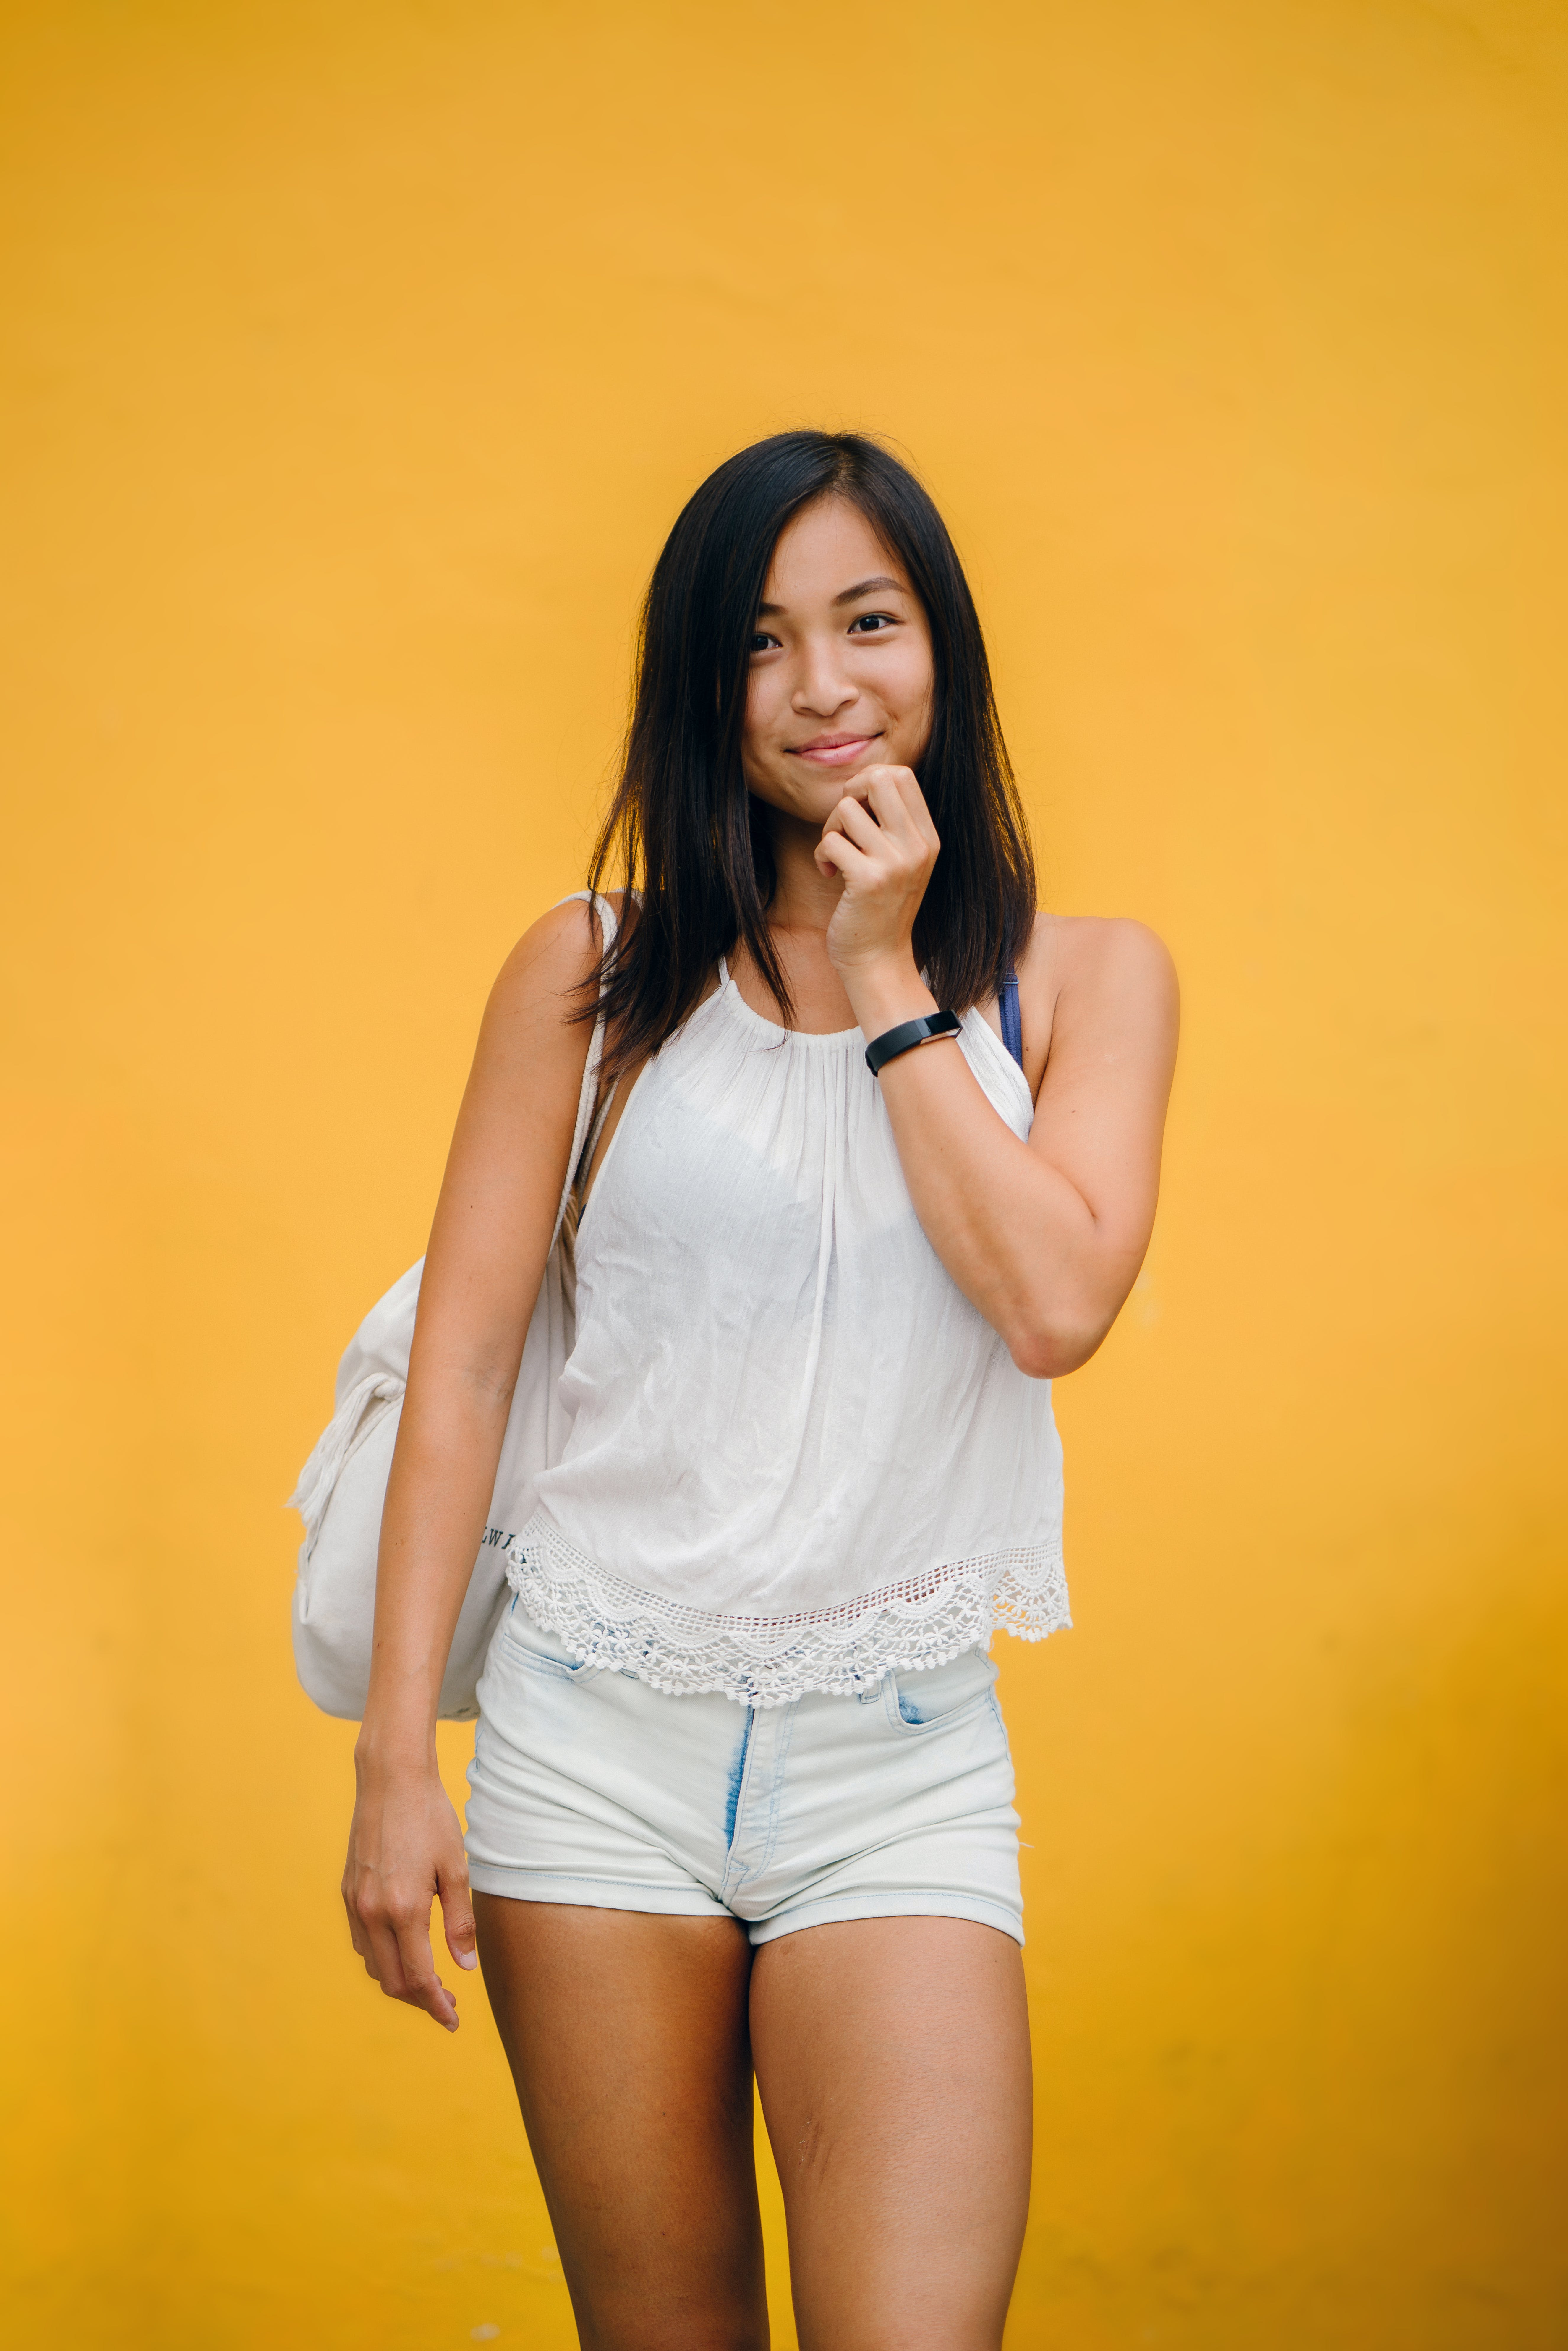 Woman Wearing White Sleeveless Shirt And White Denim Shorts